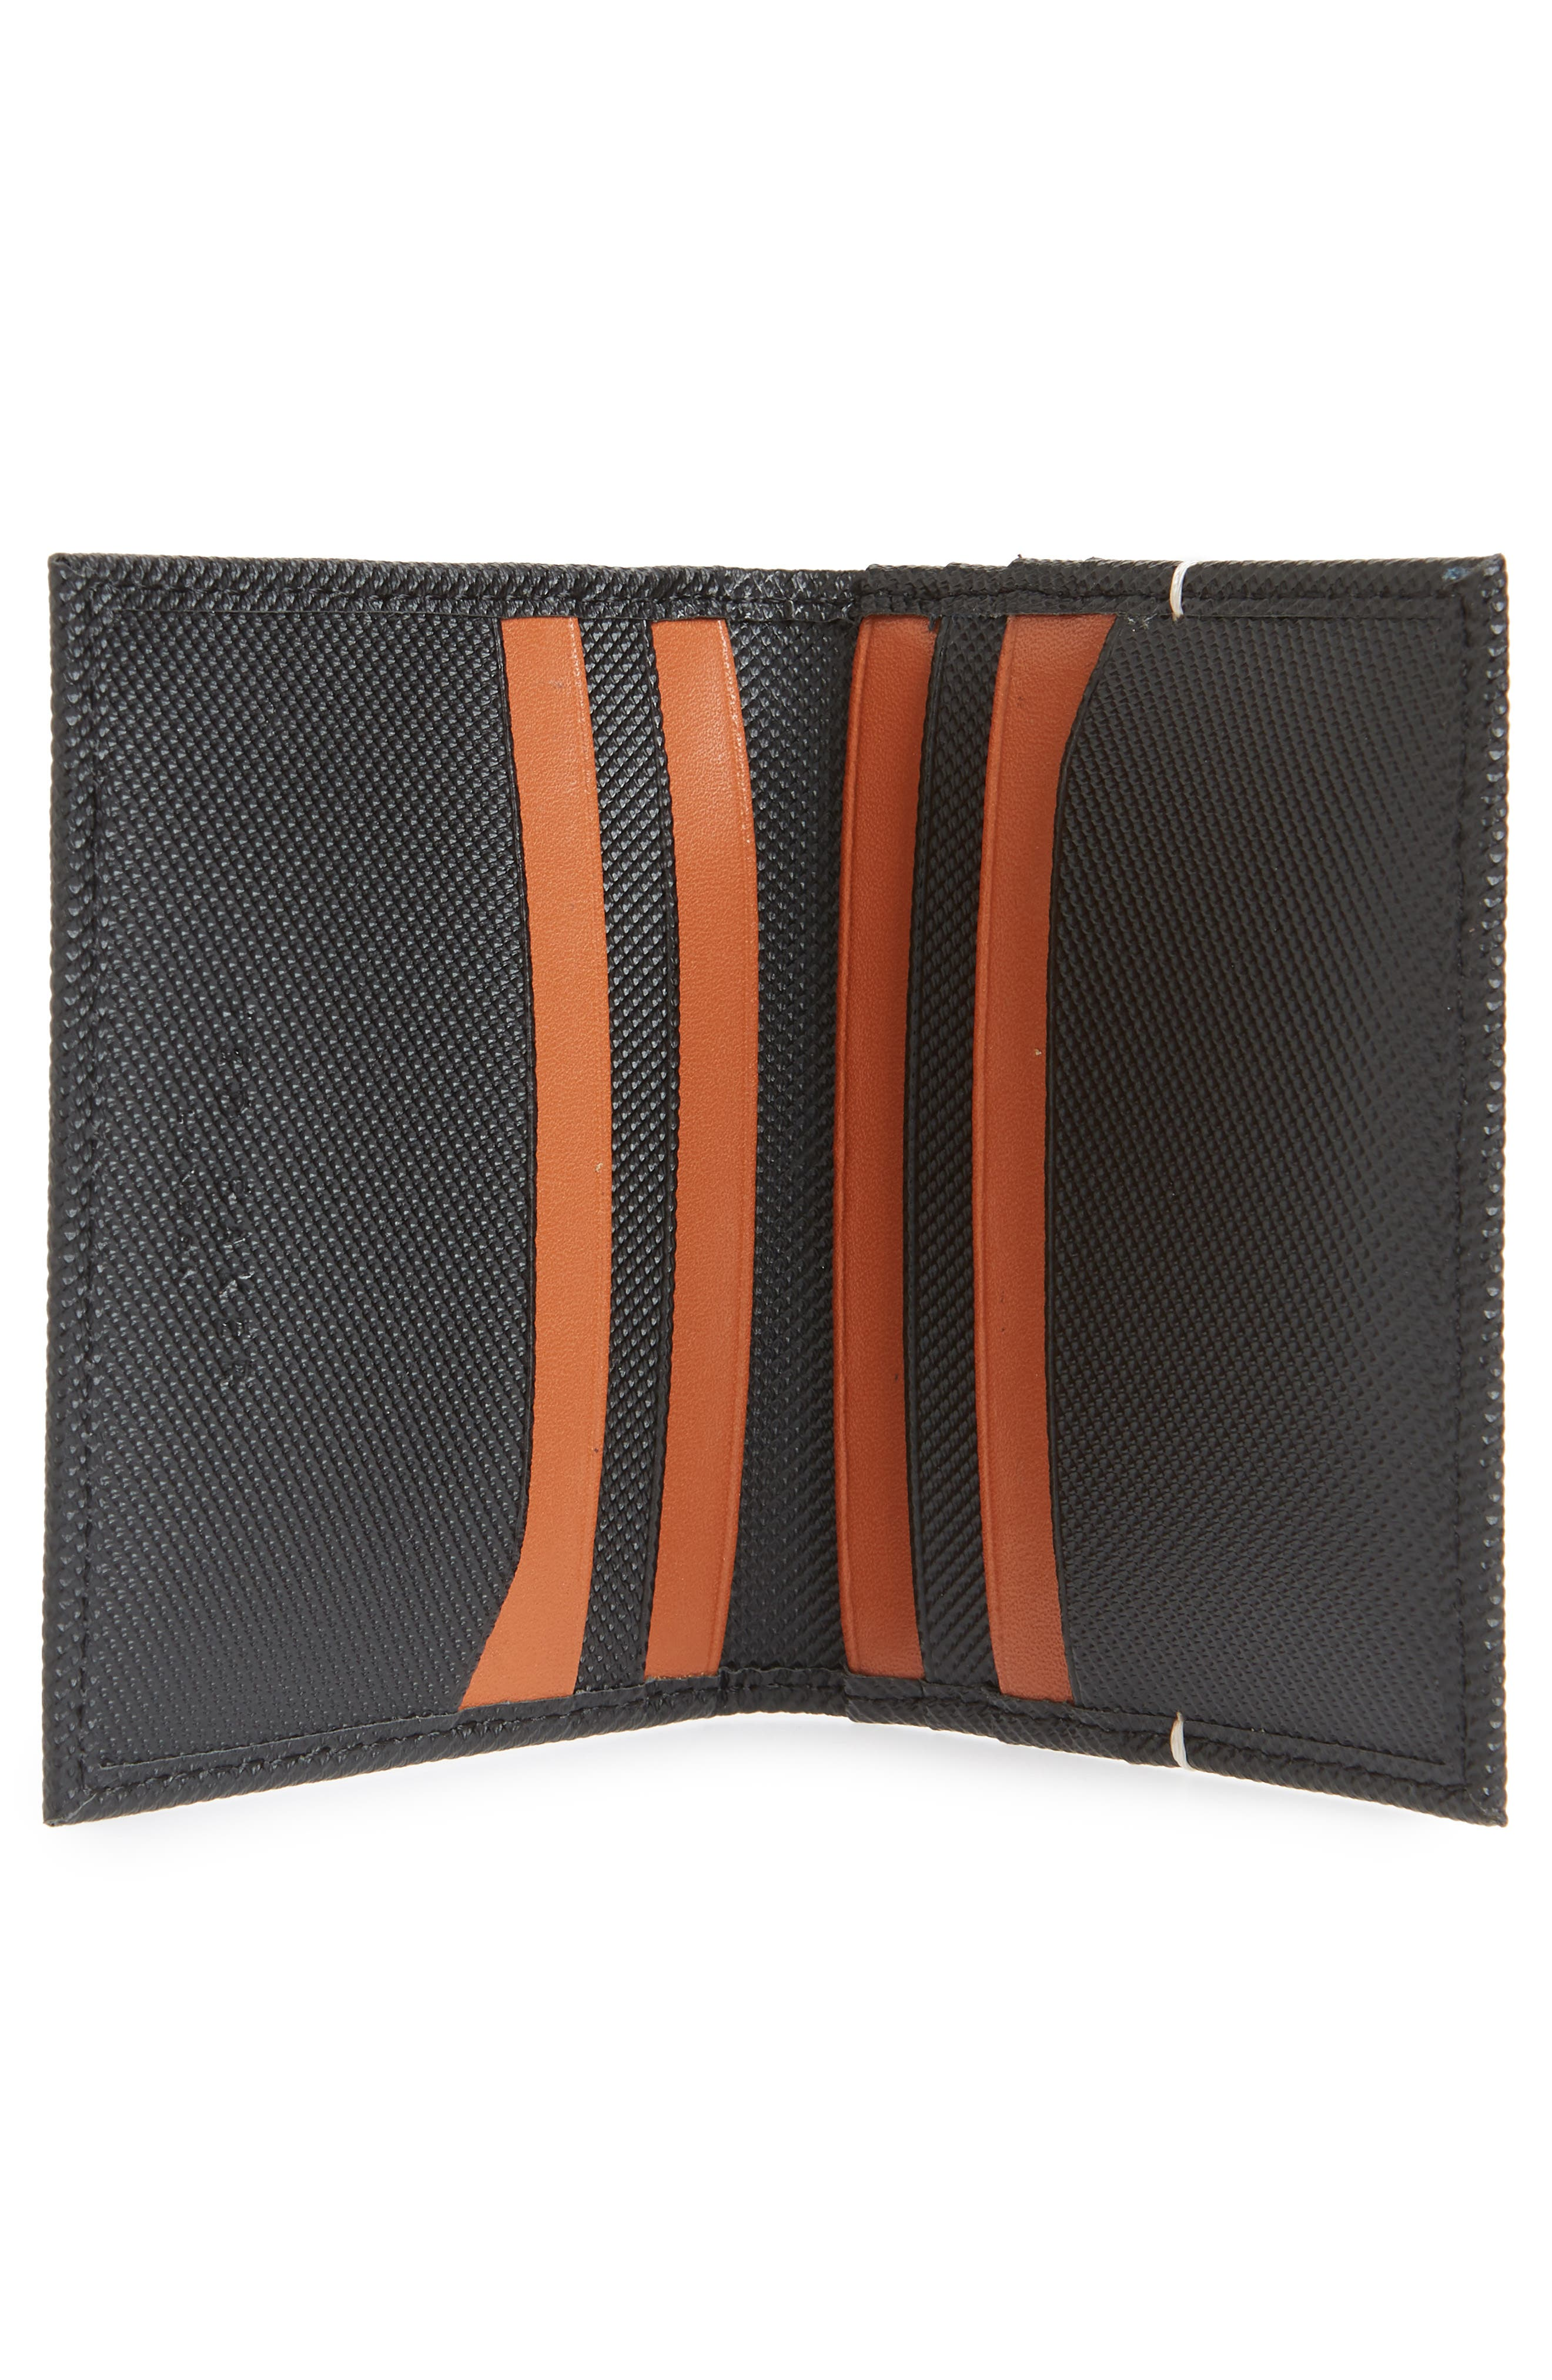 Micro Perforated Leather Bifold Card Holder,                             Alternate thumbnail 2, color,                             001